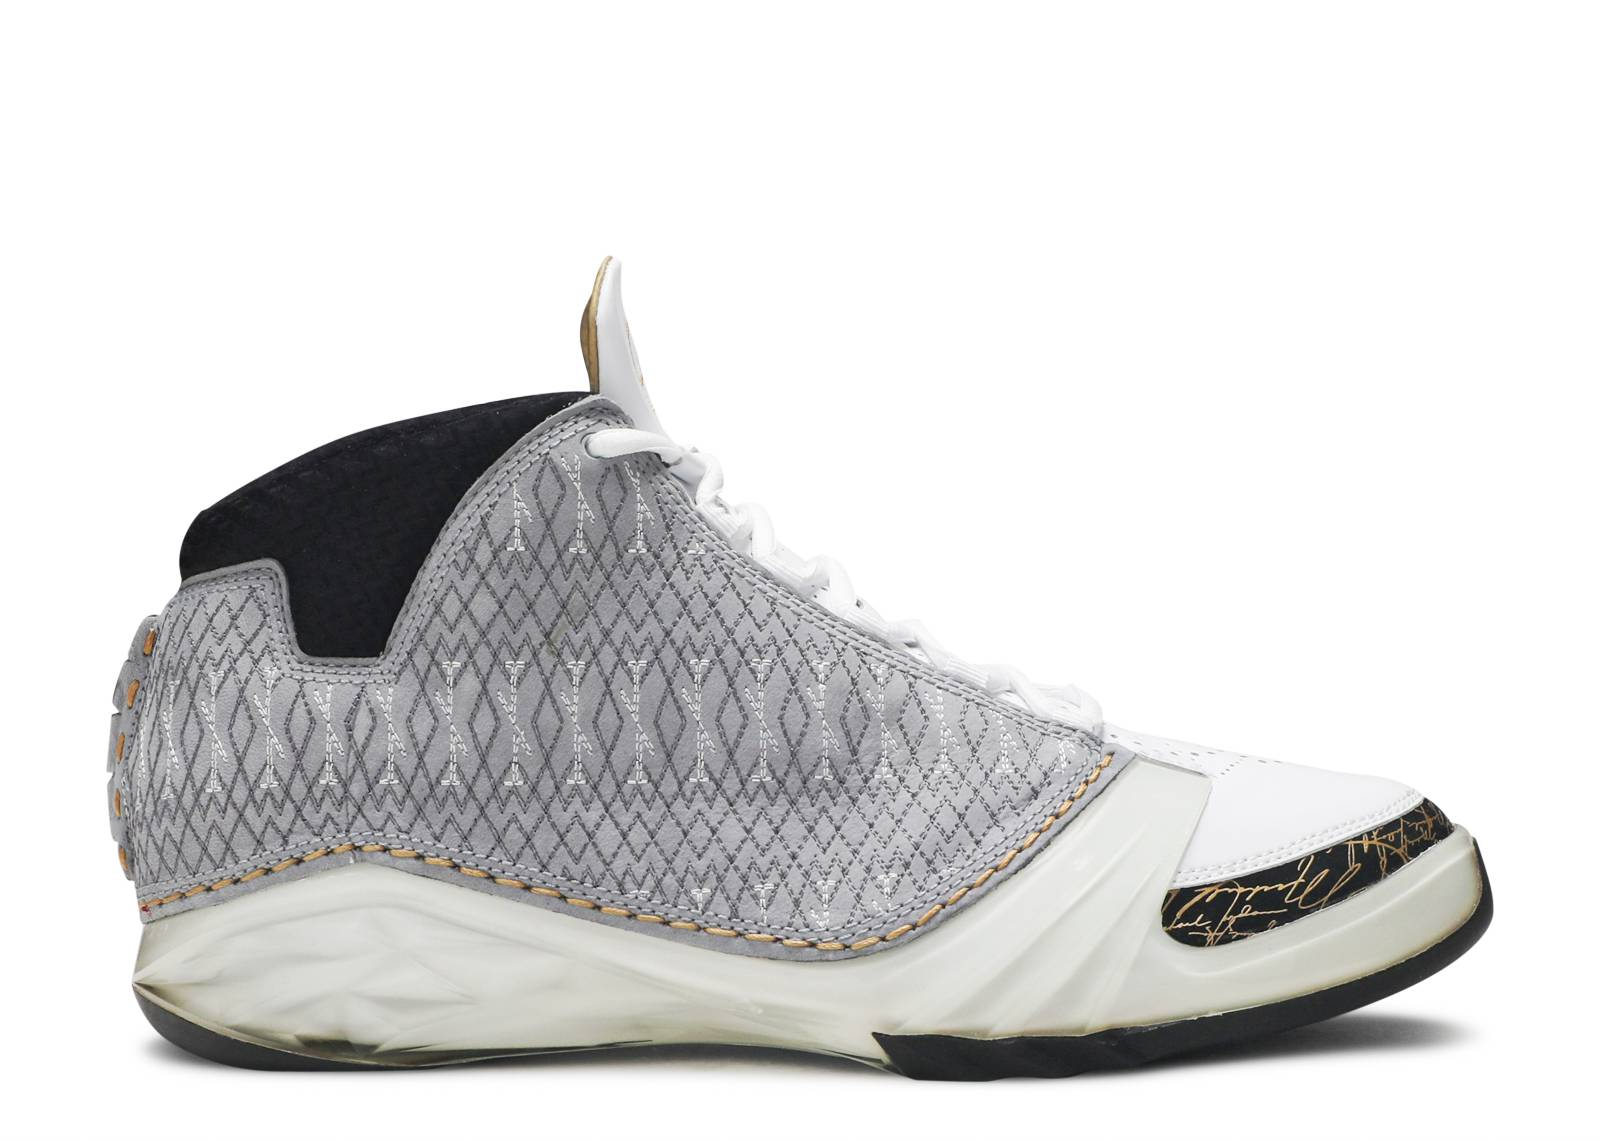 a986fbb40ca Air Jordan 23 - Air Jordan - 318376 102 - white/stealth-black ...